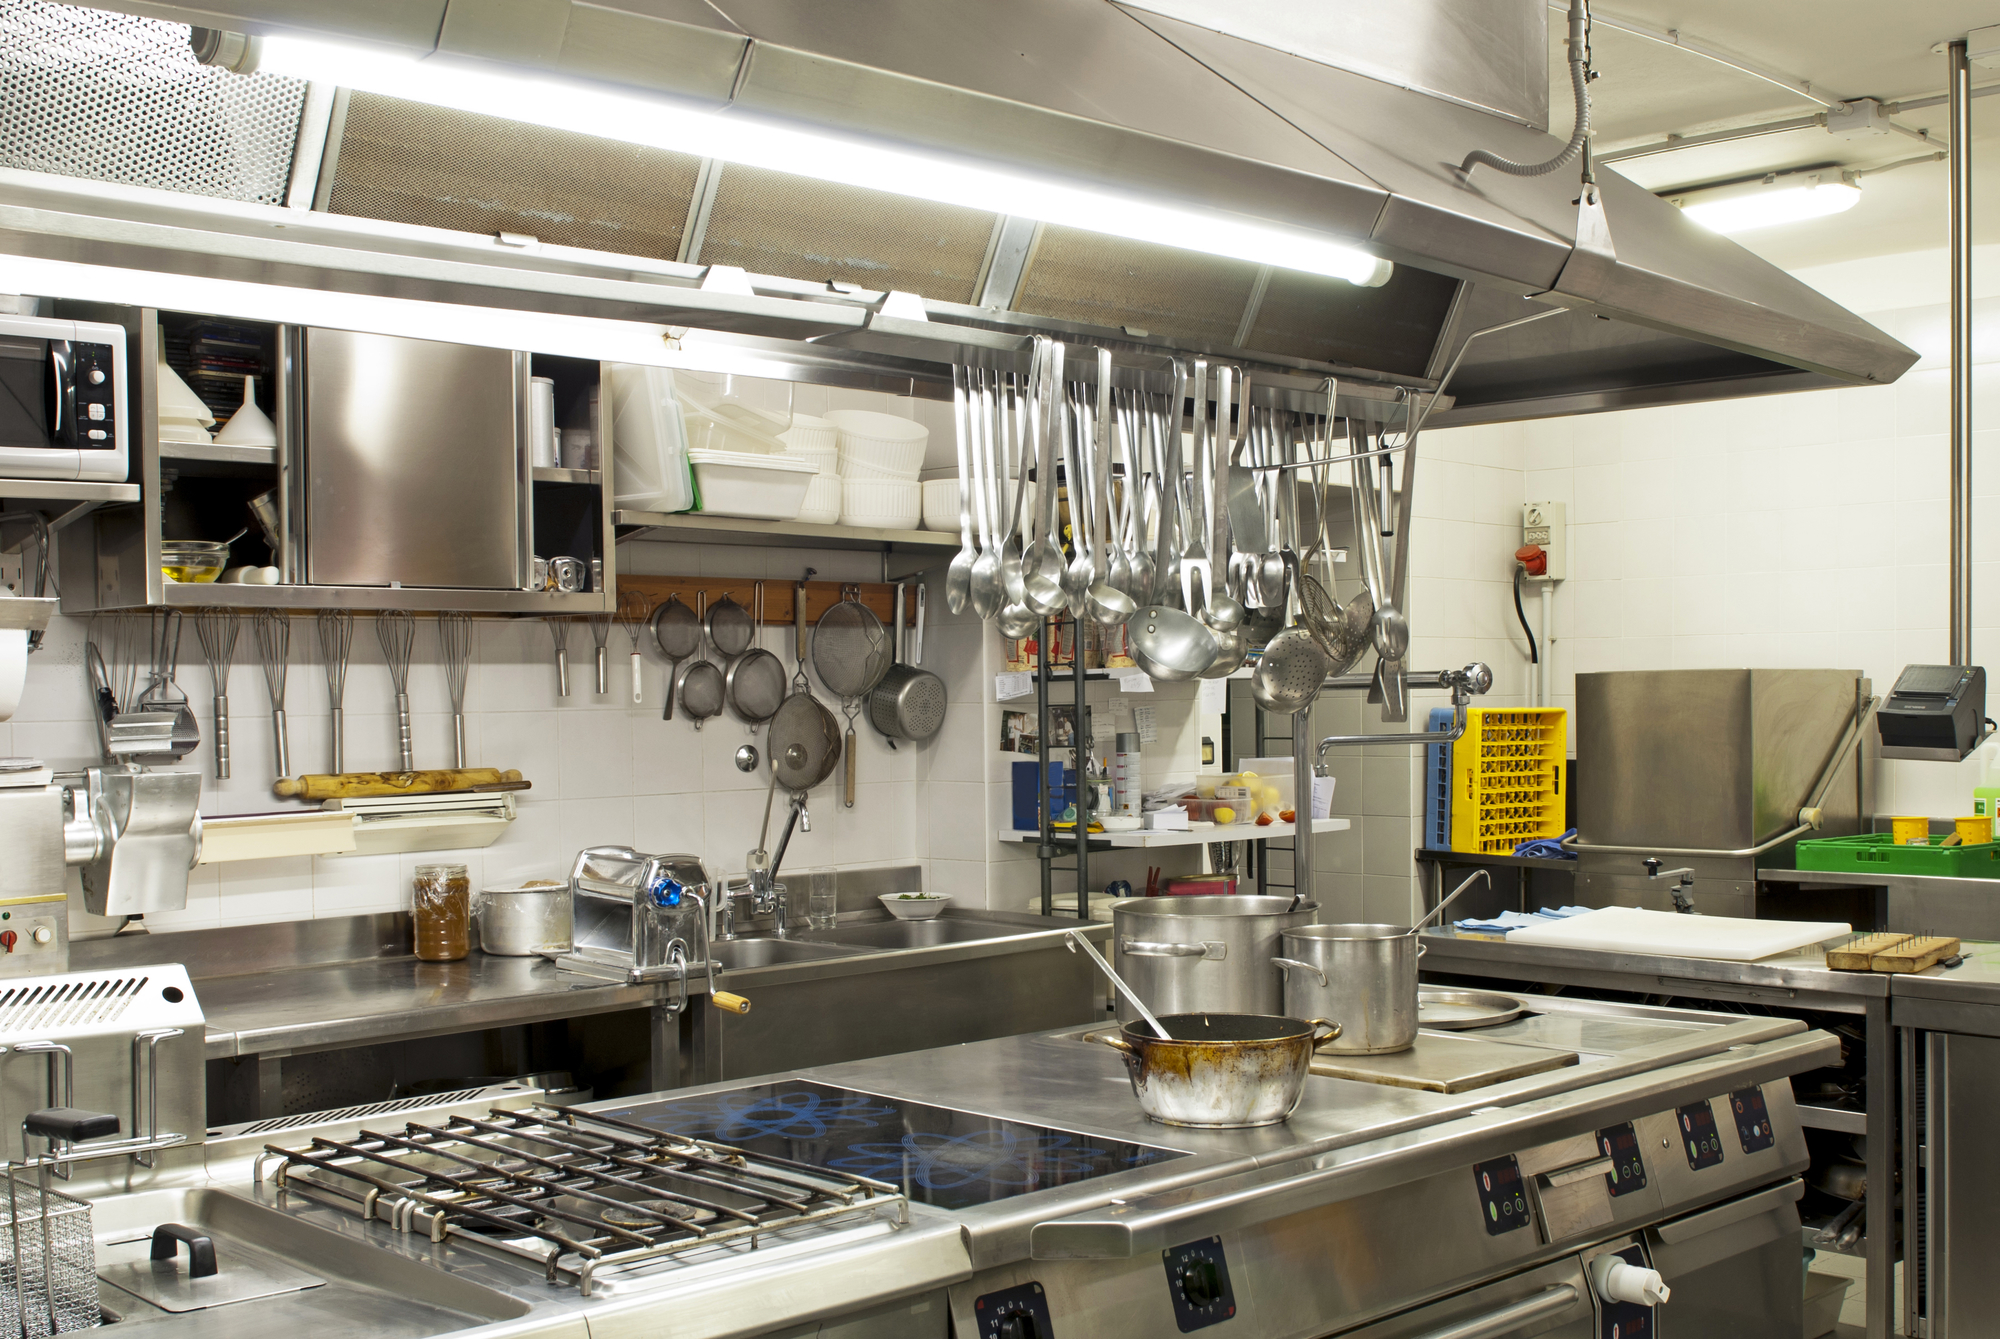 New to running a kitchen here is your restaurant equipment checklist tech 24 feasterville for Cuisine professionnelle